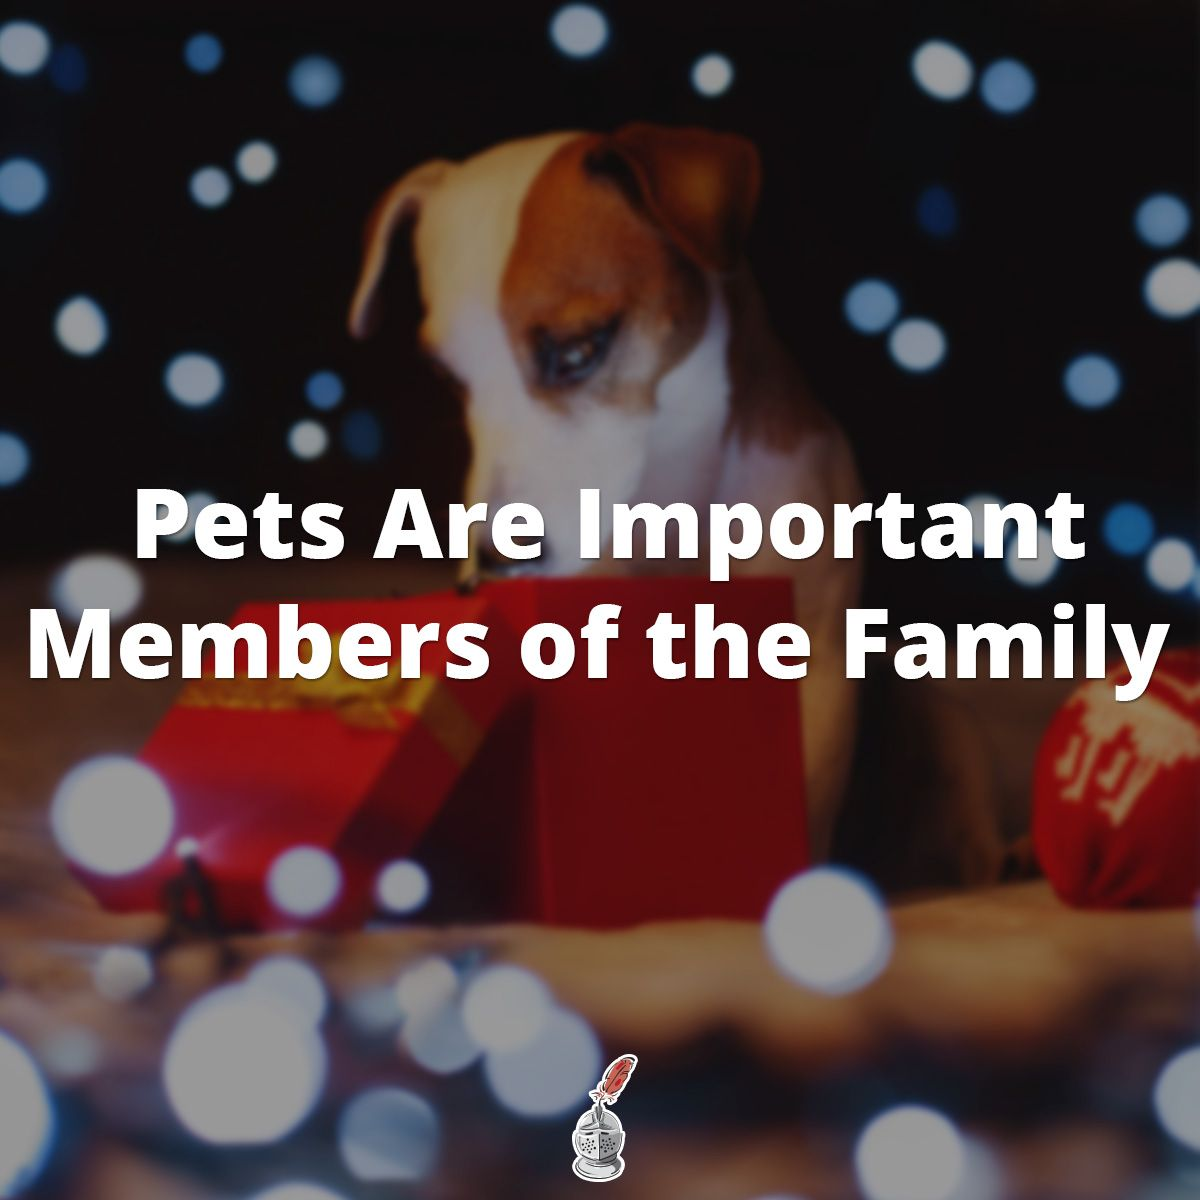 Pets Are Important Members of the Family